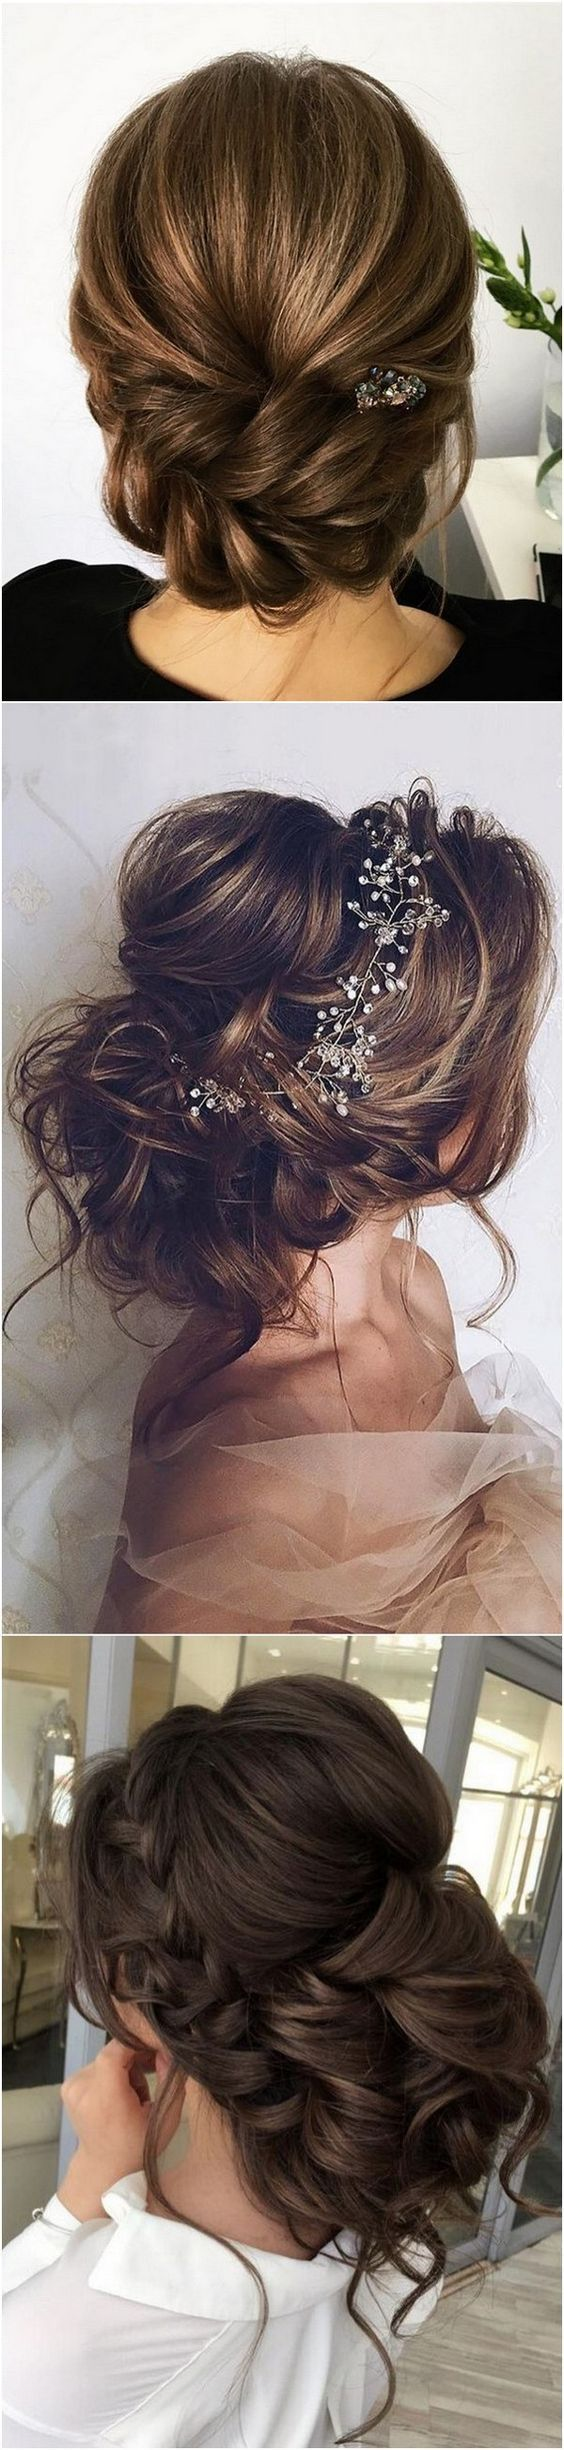 best bridal makeup and updos images on pinterest hair dos